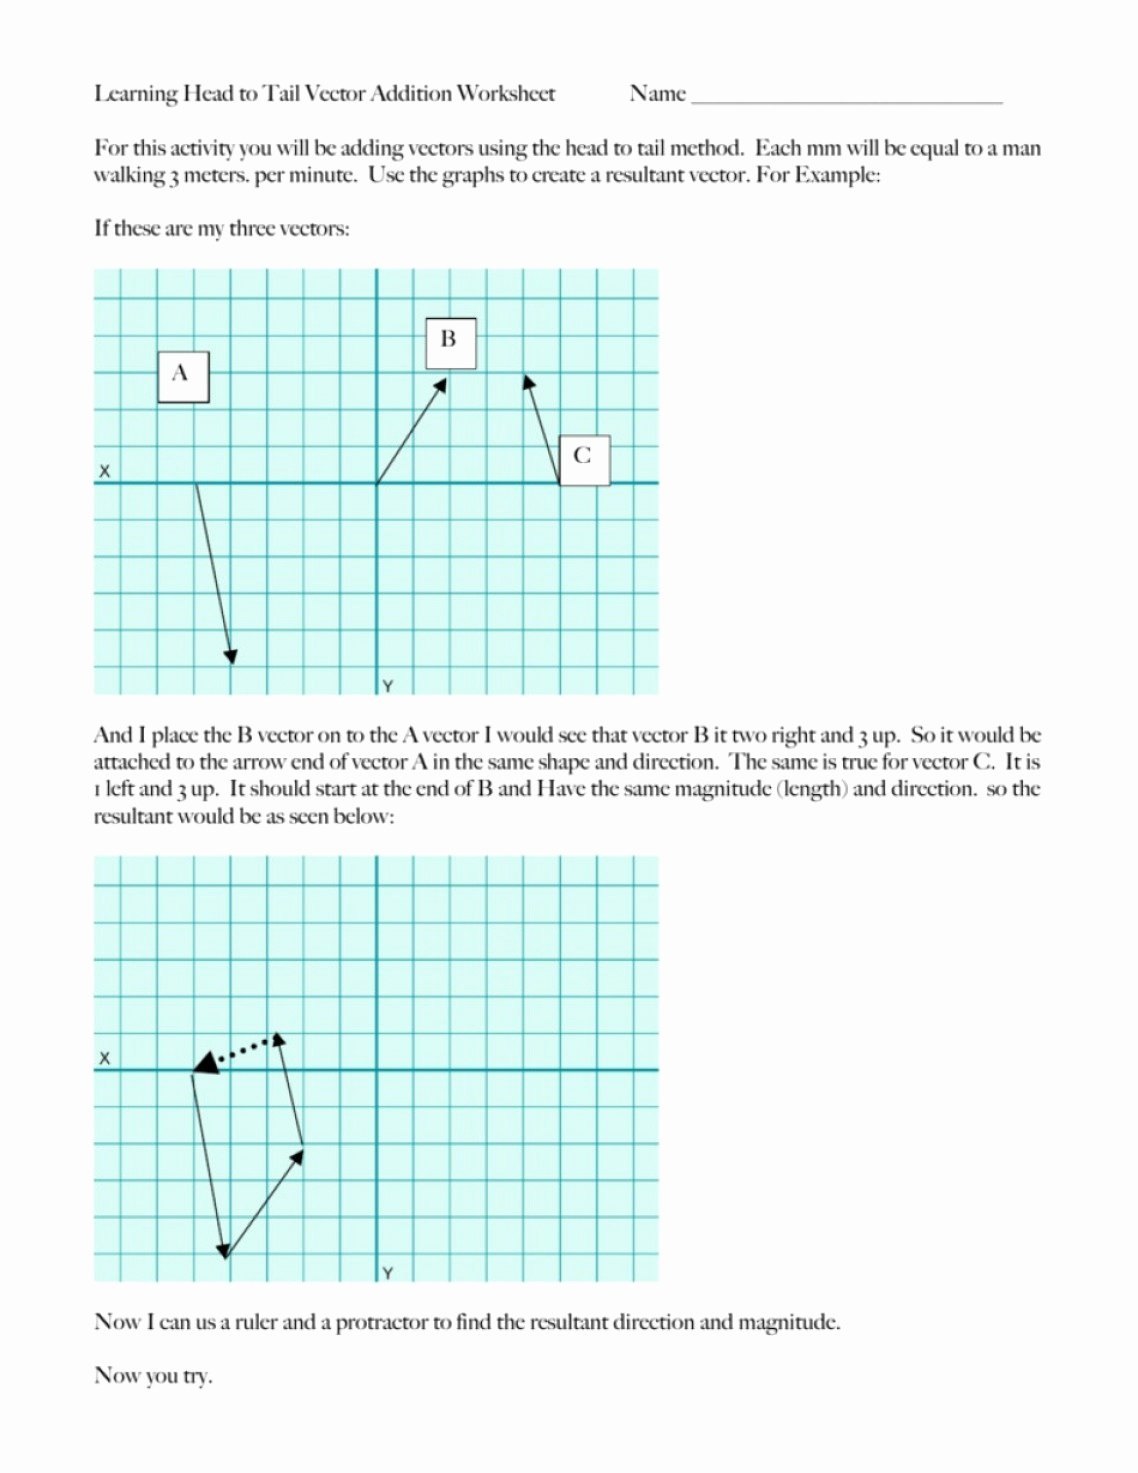 Vector Worksheet Physics Answers Awesome Vector Resolution Worksheet